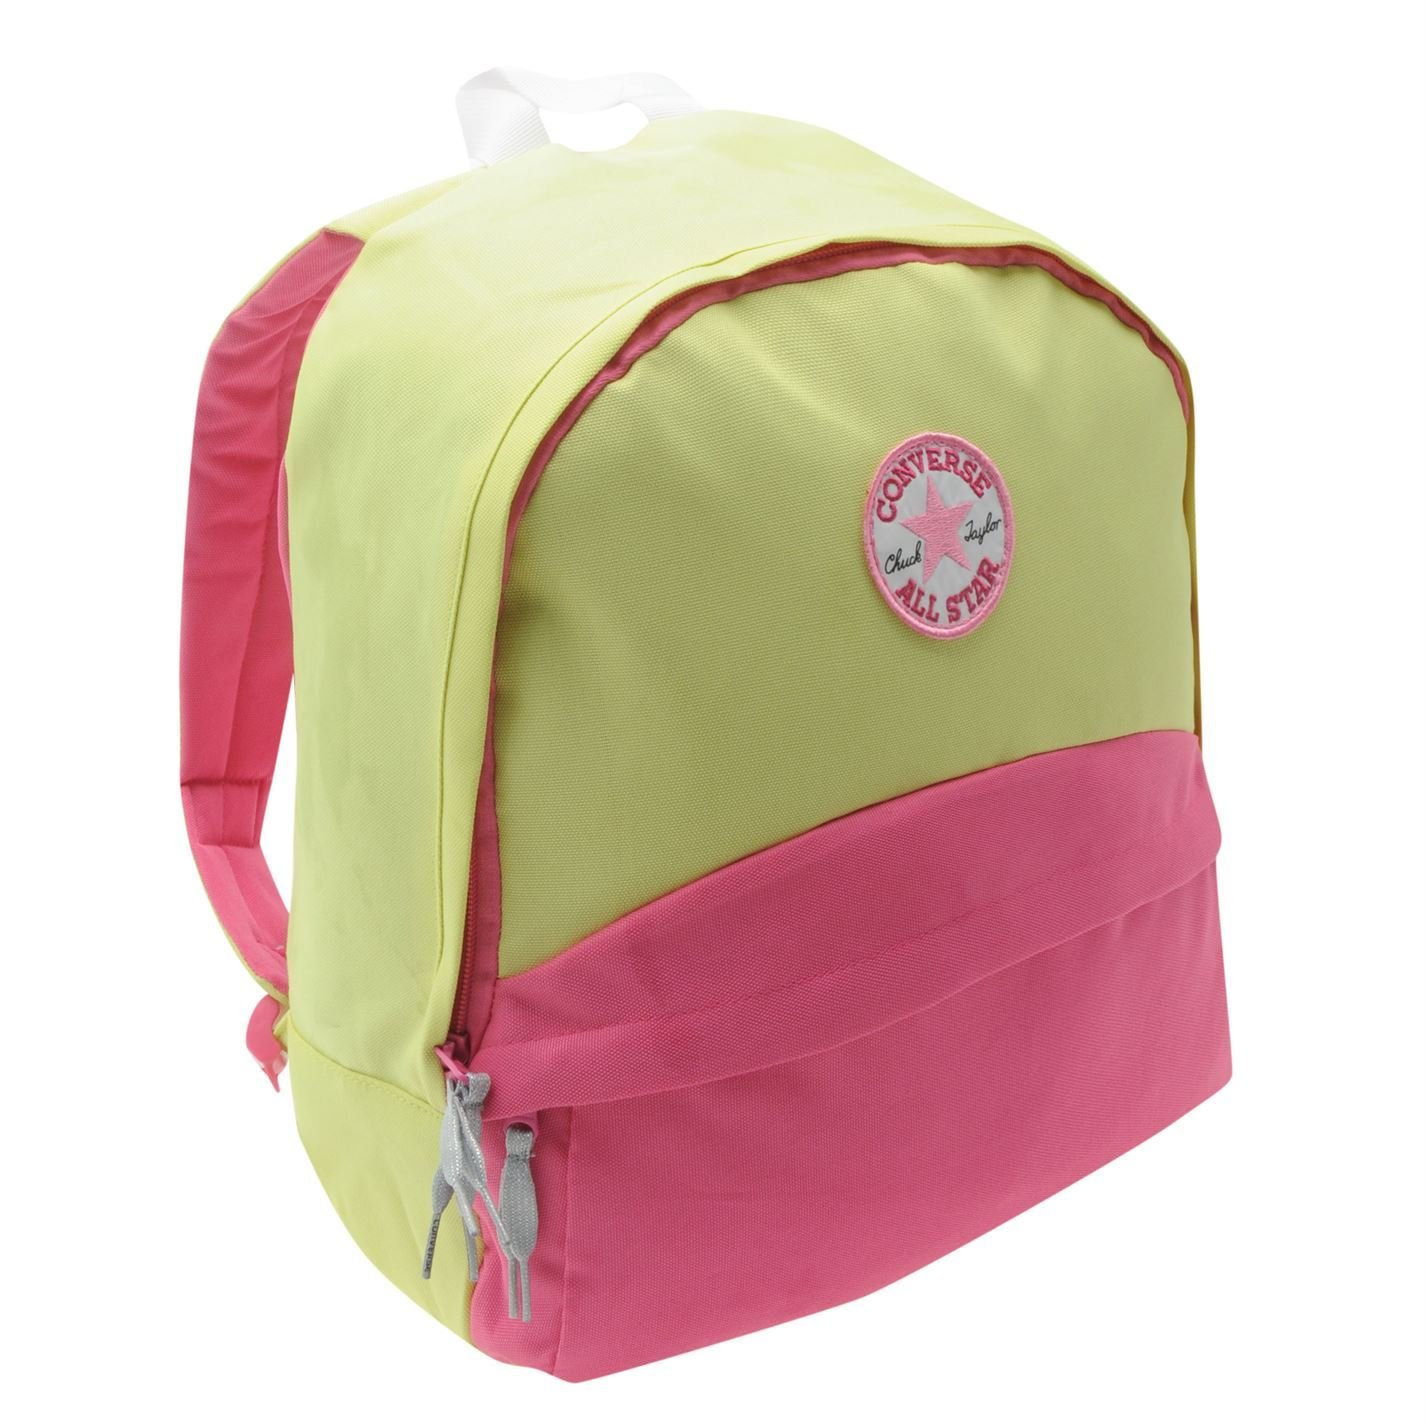 Converse 4a5033 Backpack Green Rucksack Sports Bag Gymbag Kitbag H Pink 15 Inches W 11 D 45 Outdoors